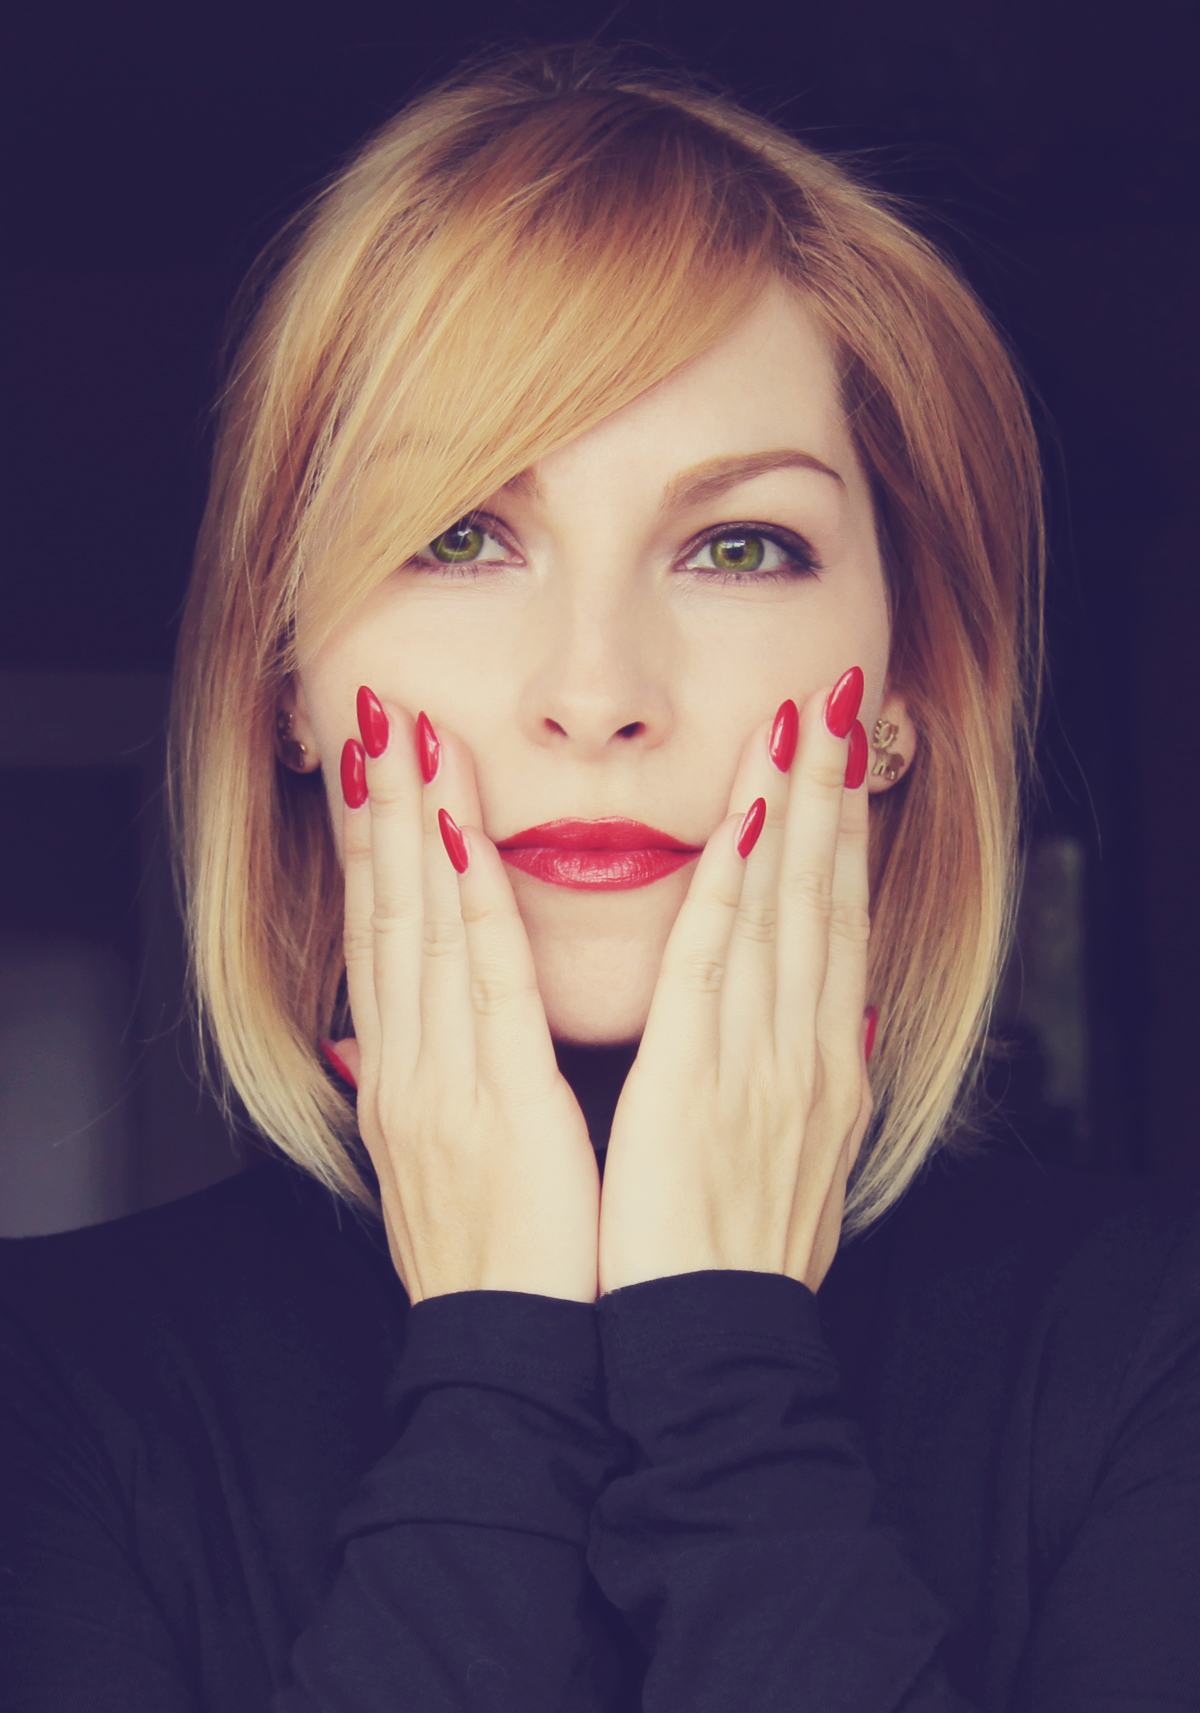 H M Turtleneck The Red Nails – The ...